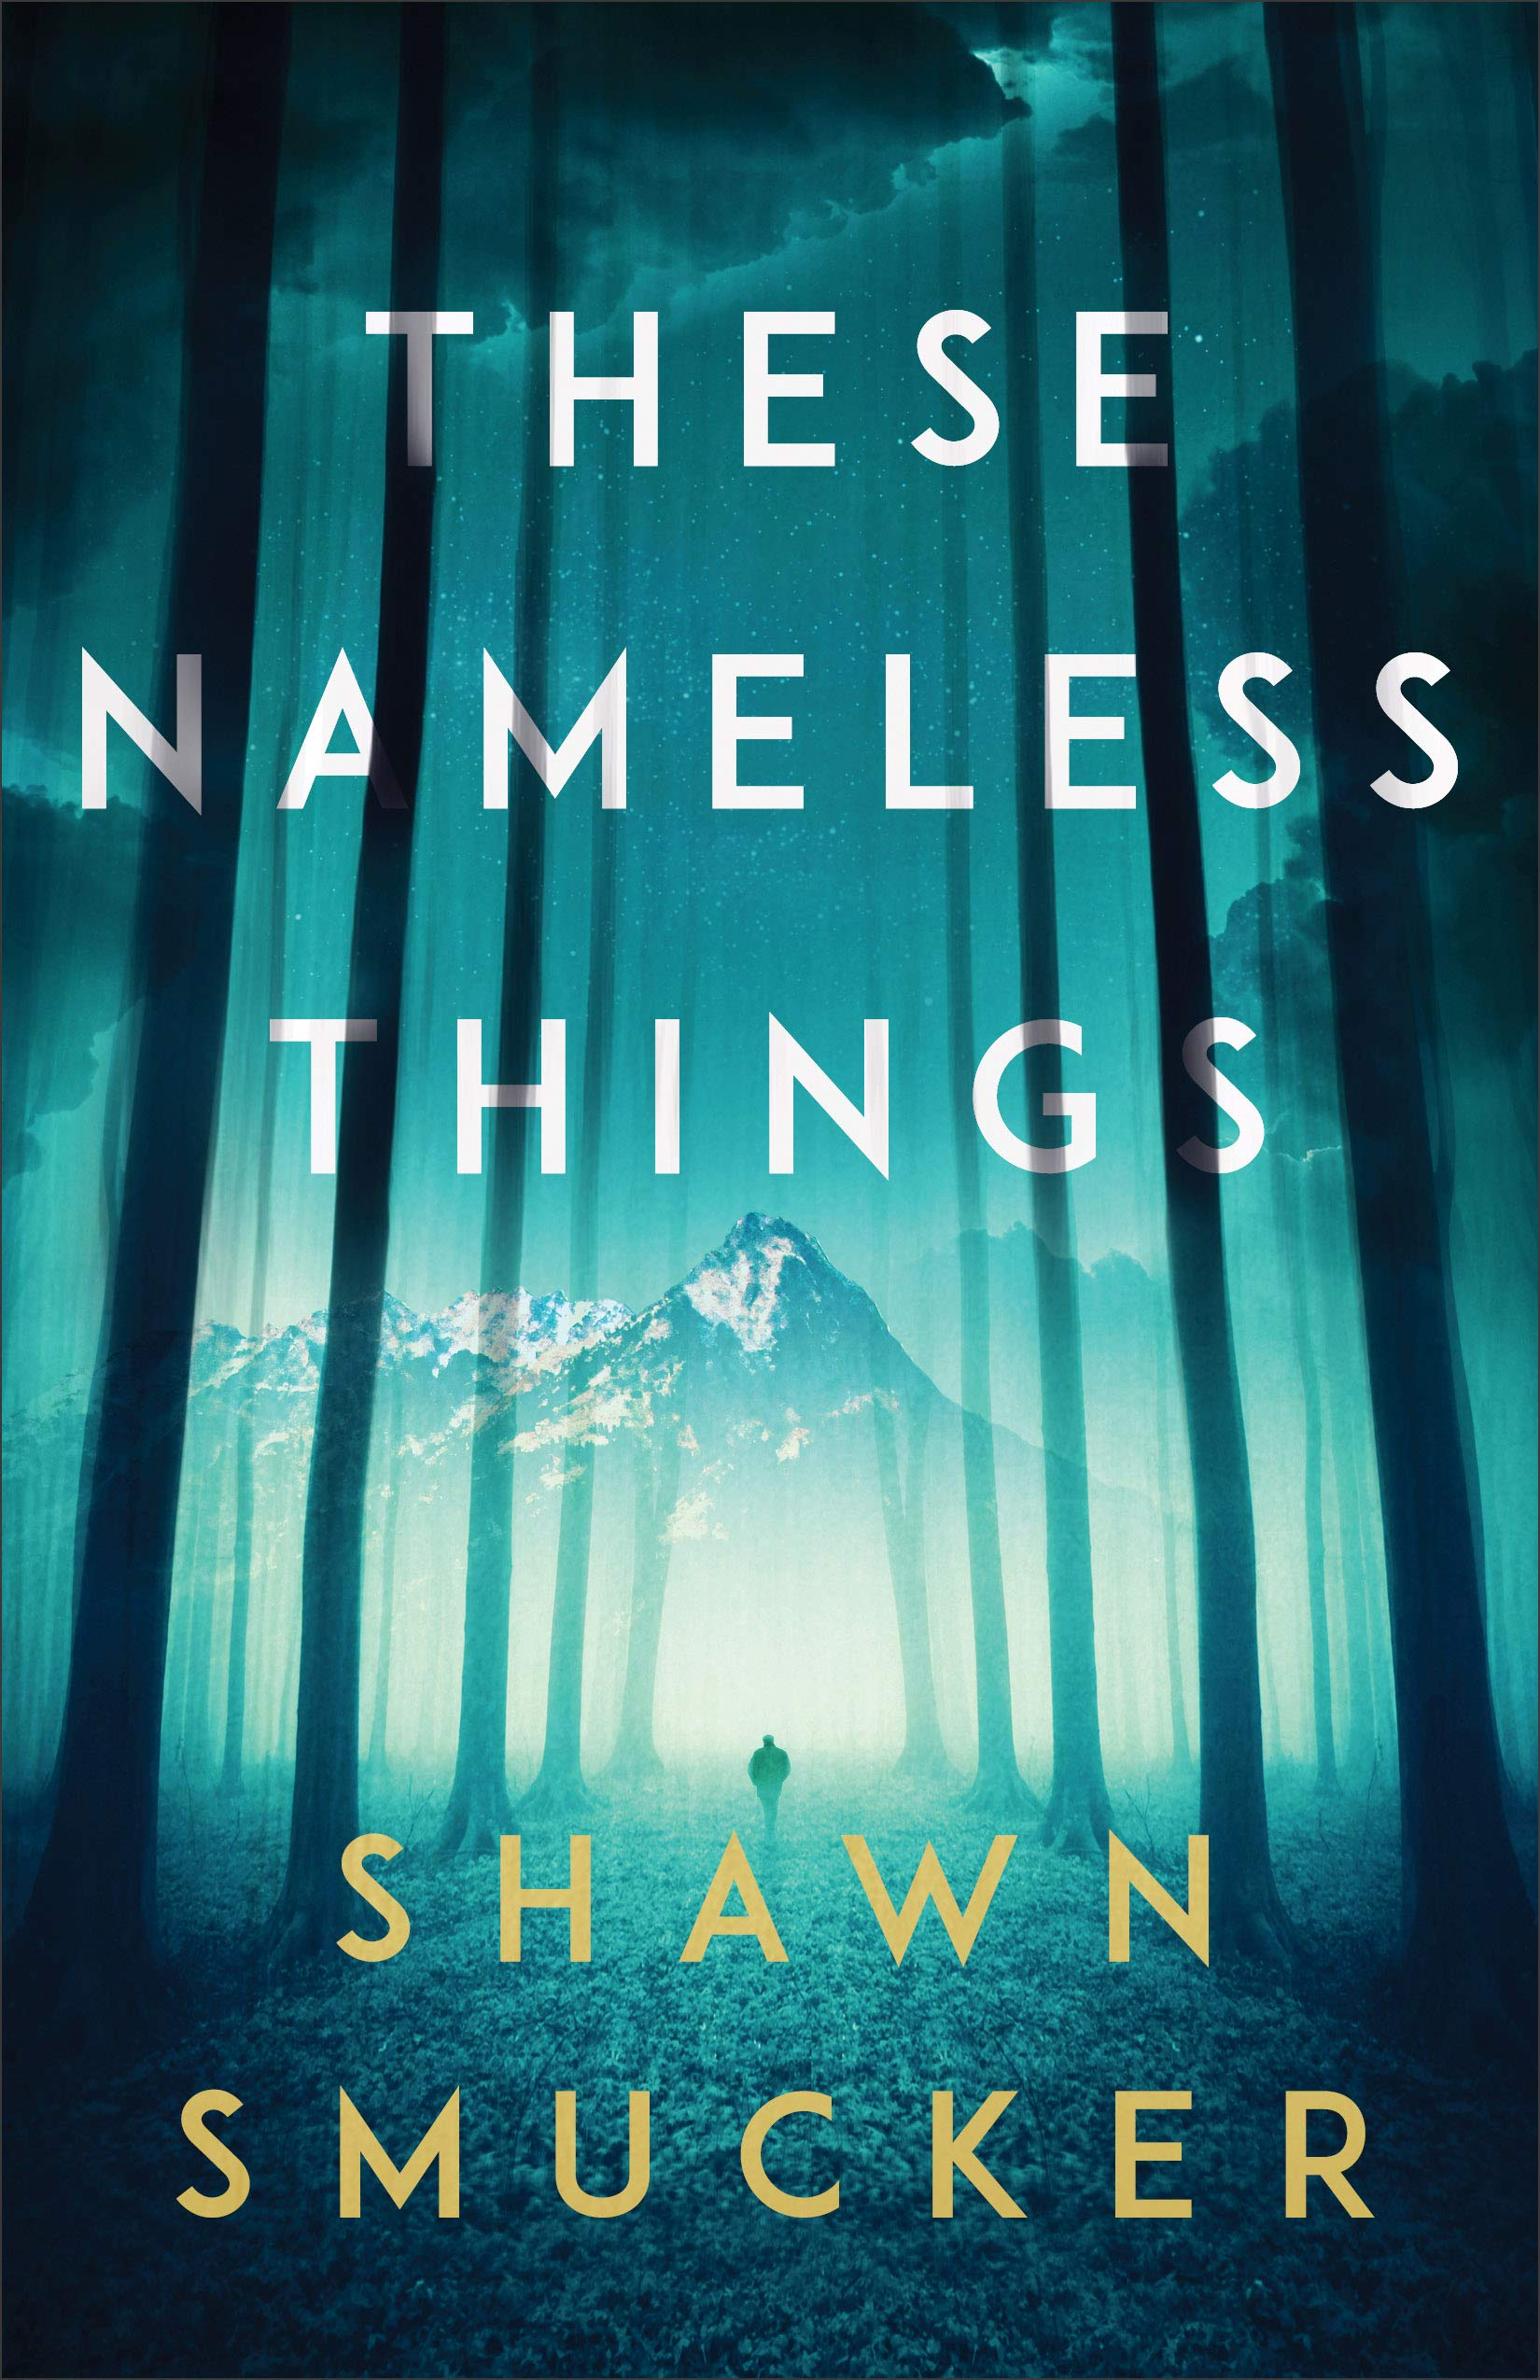 These Nameless Things by Shawn Smucker {A Book Review}